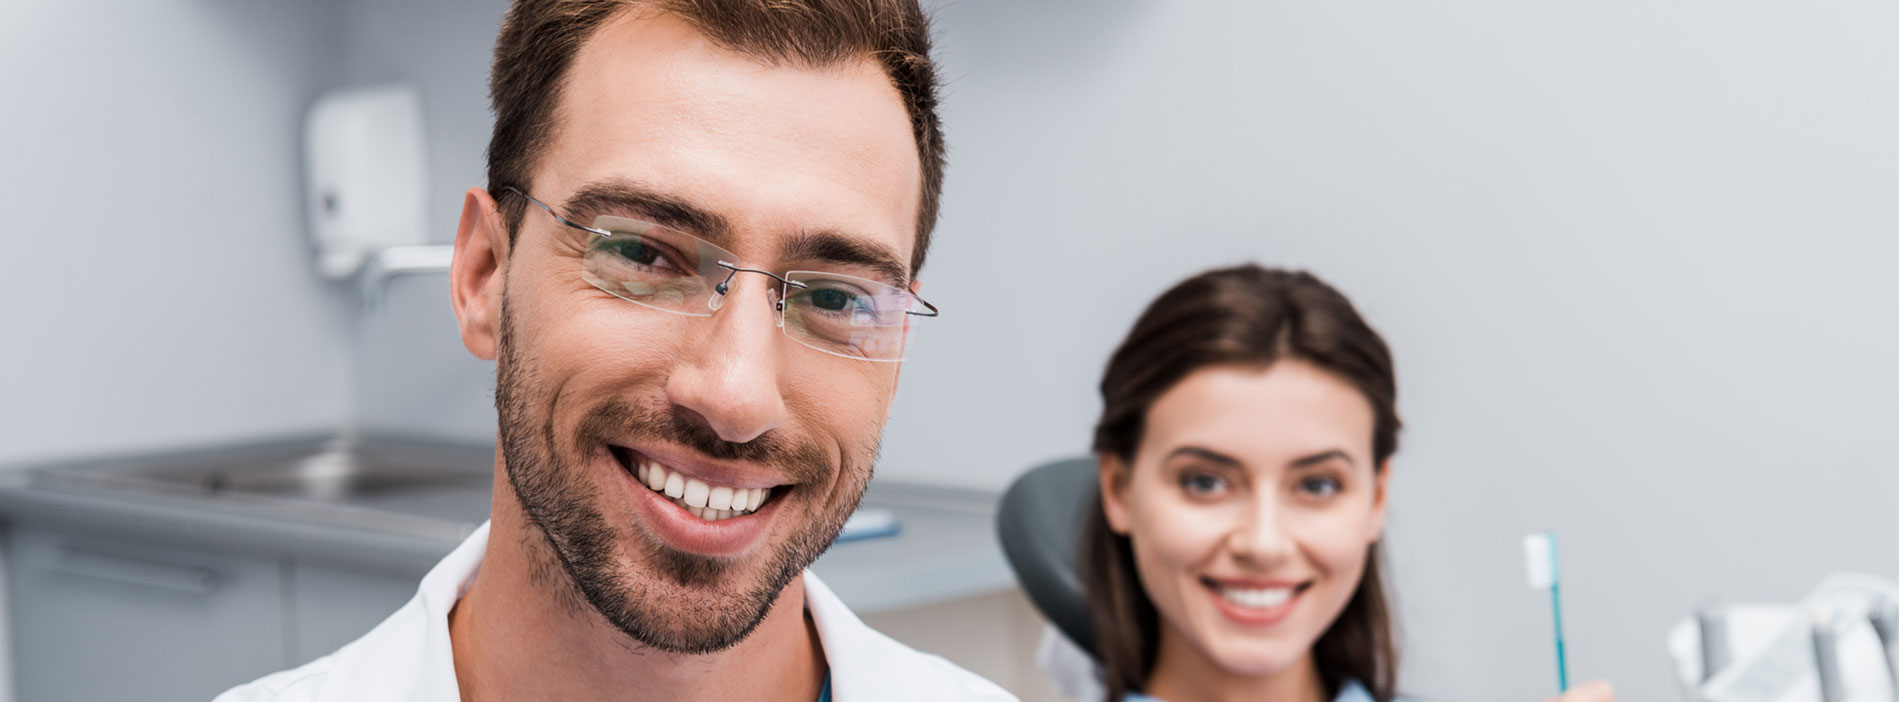 Dentist and patient smiling